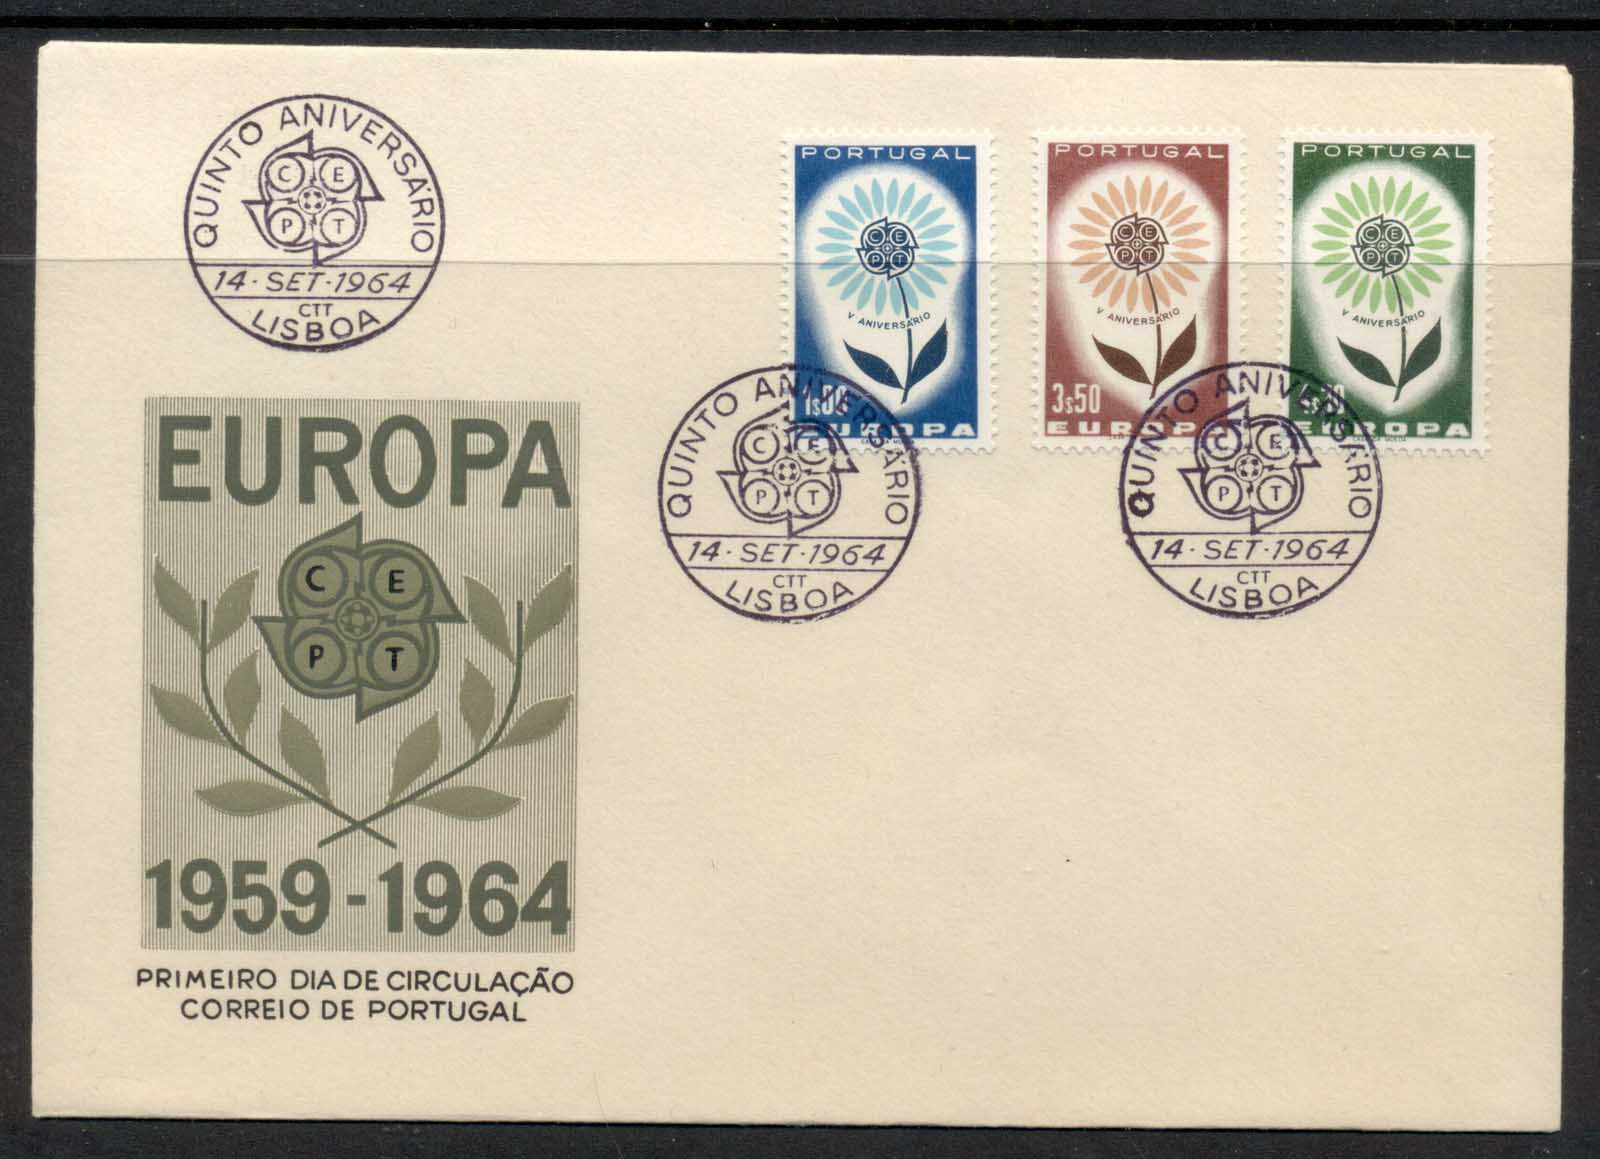 Portugal 1964 Europa Daisy of Petals FDC - Click Image to Close